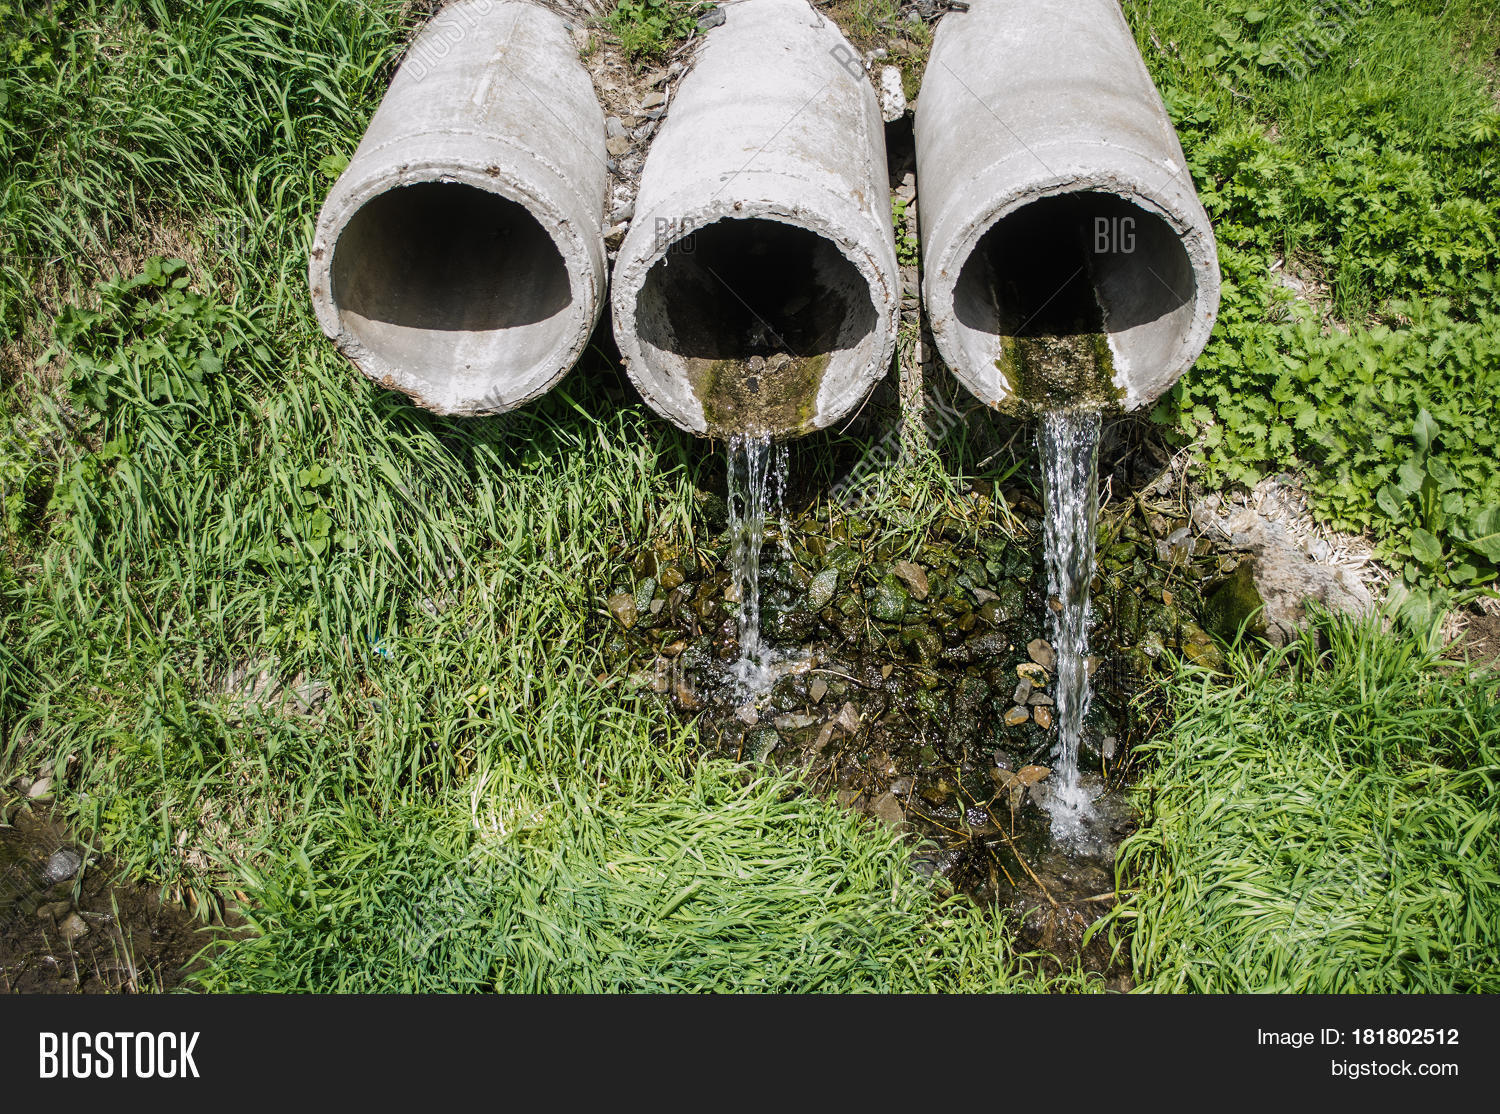 Waste Pipe Drainage Image & Photo (Free Trial) | Bigstock